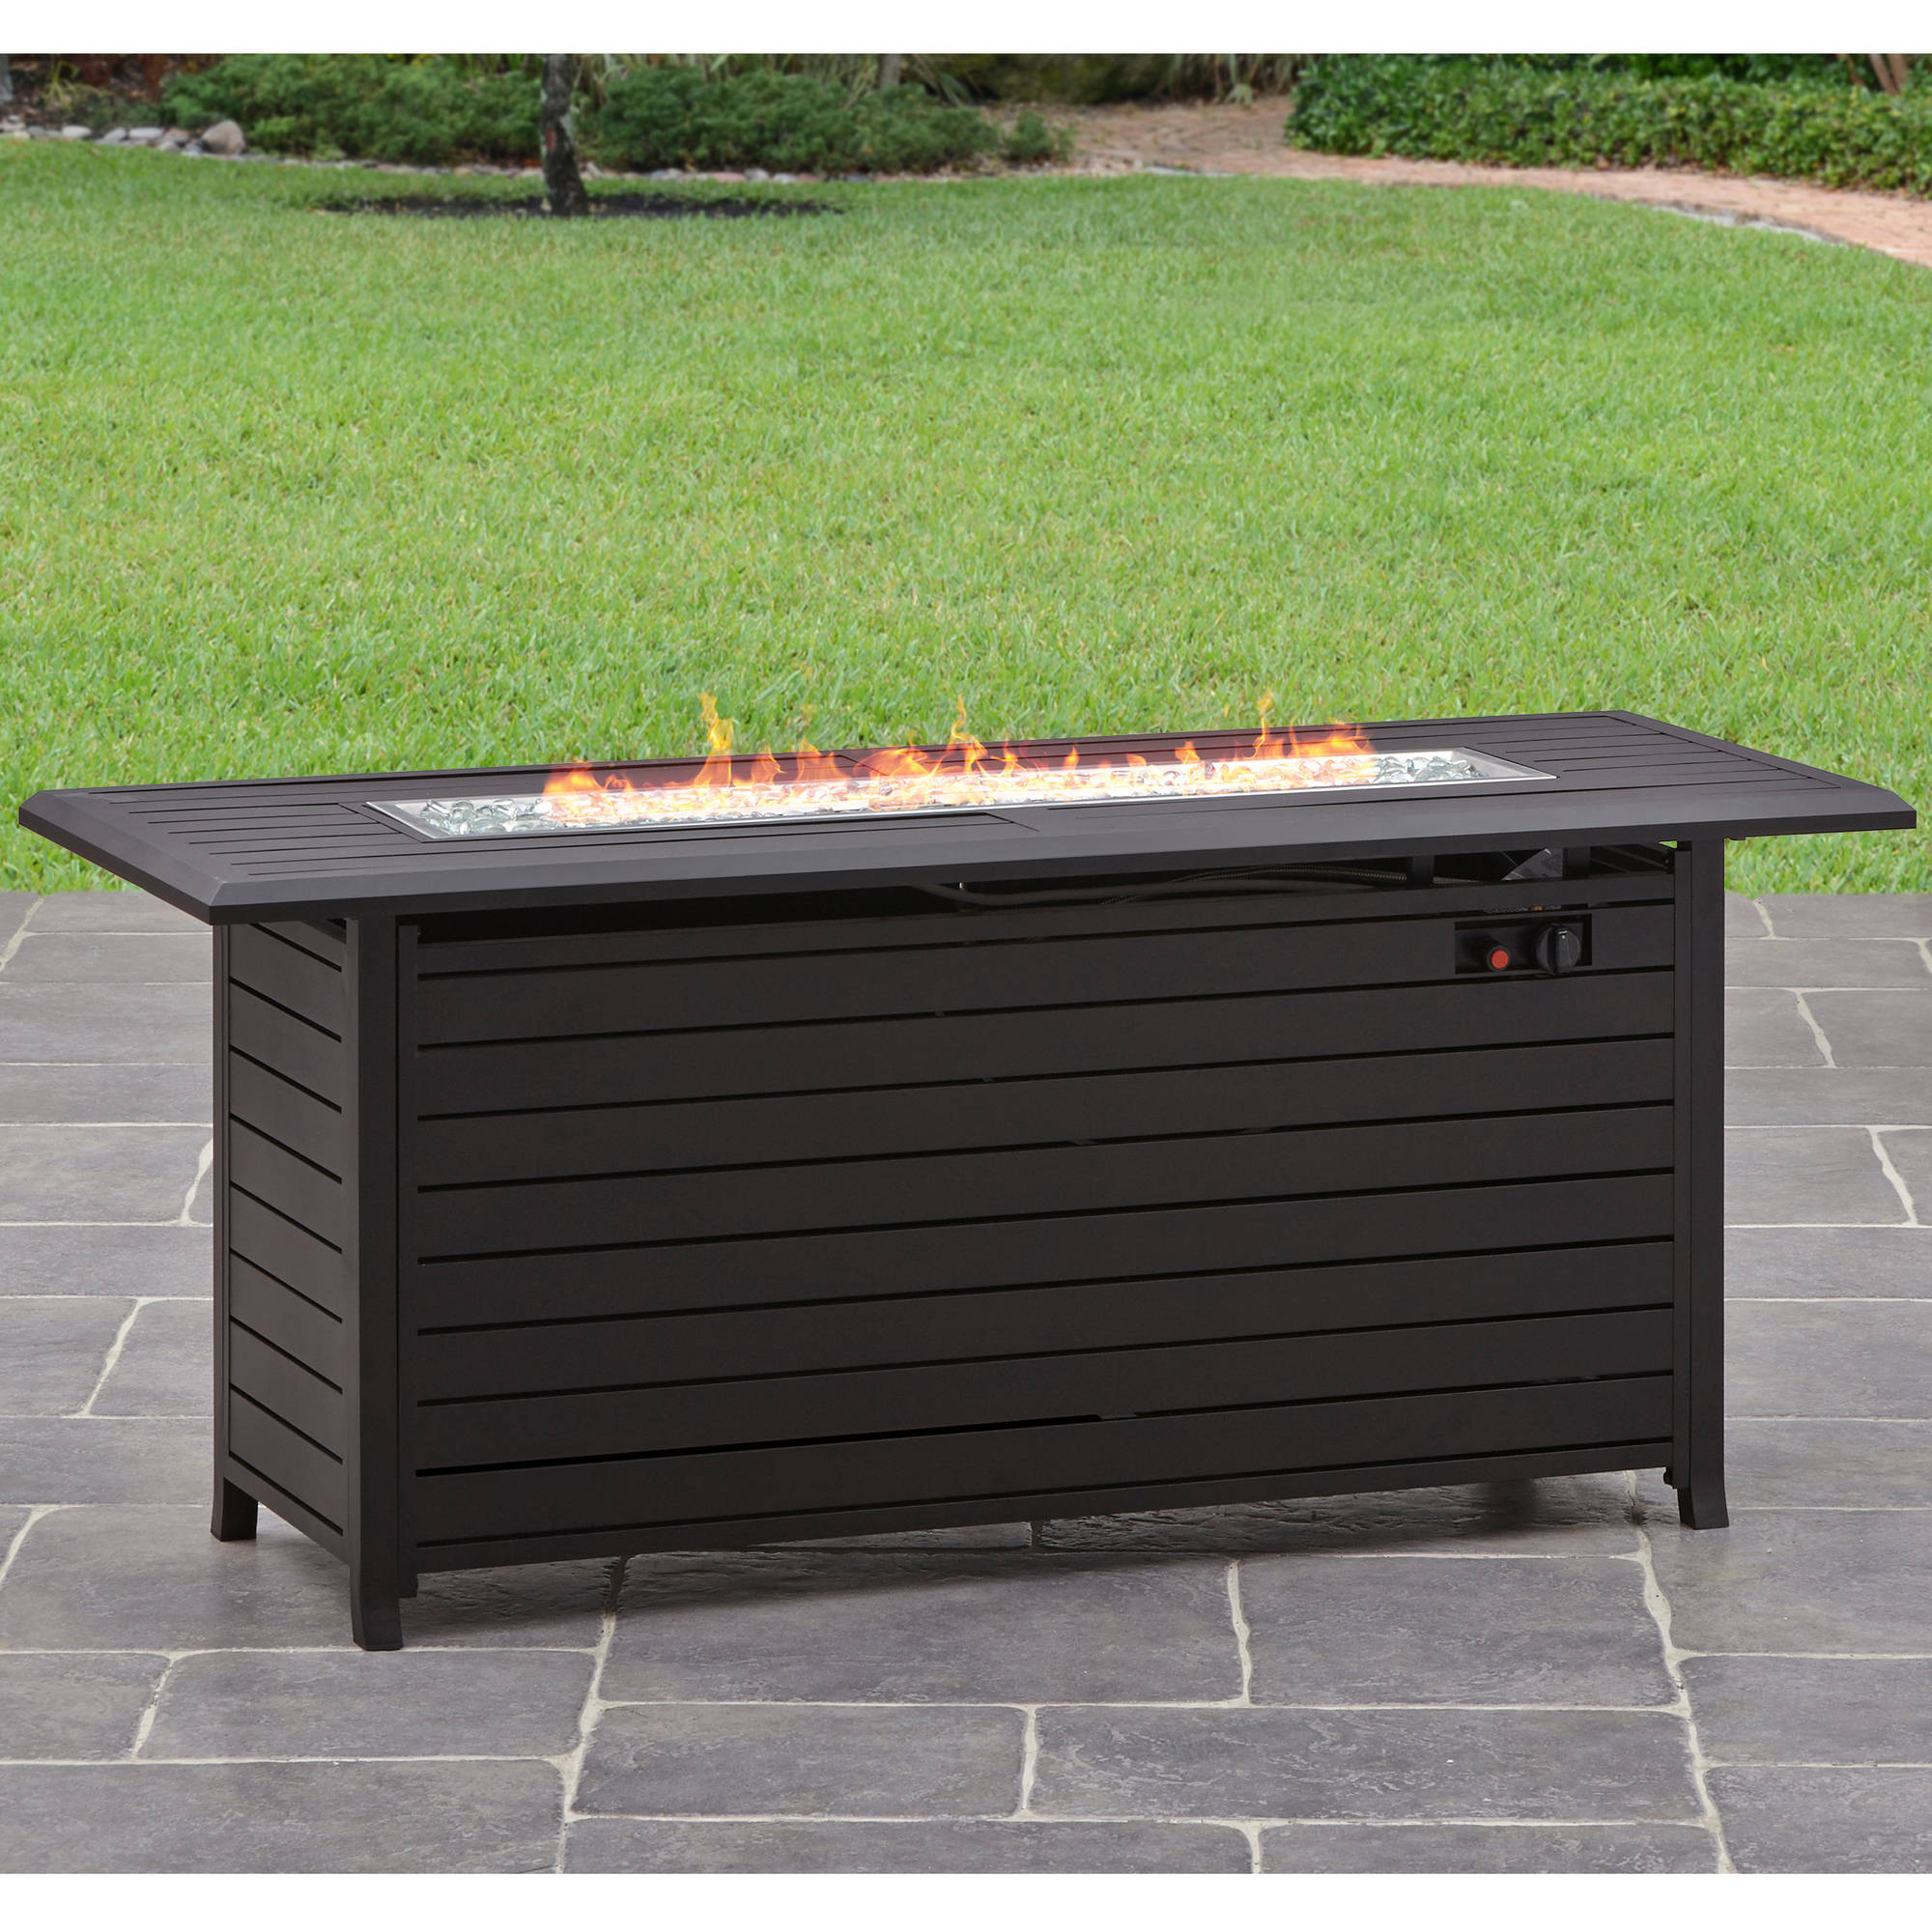 Better Homes And Gardens Outdoor Fireplaces 13 4 Ybonlineacess De